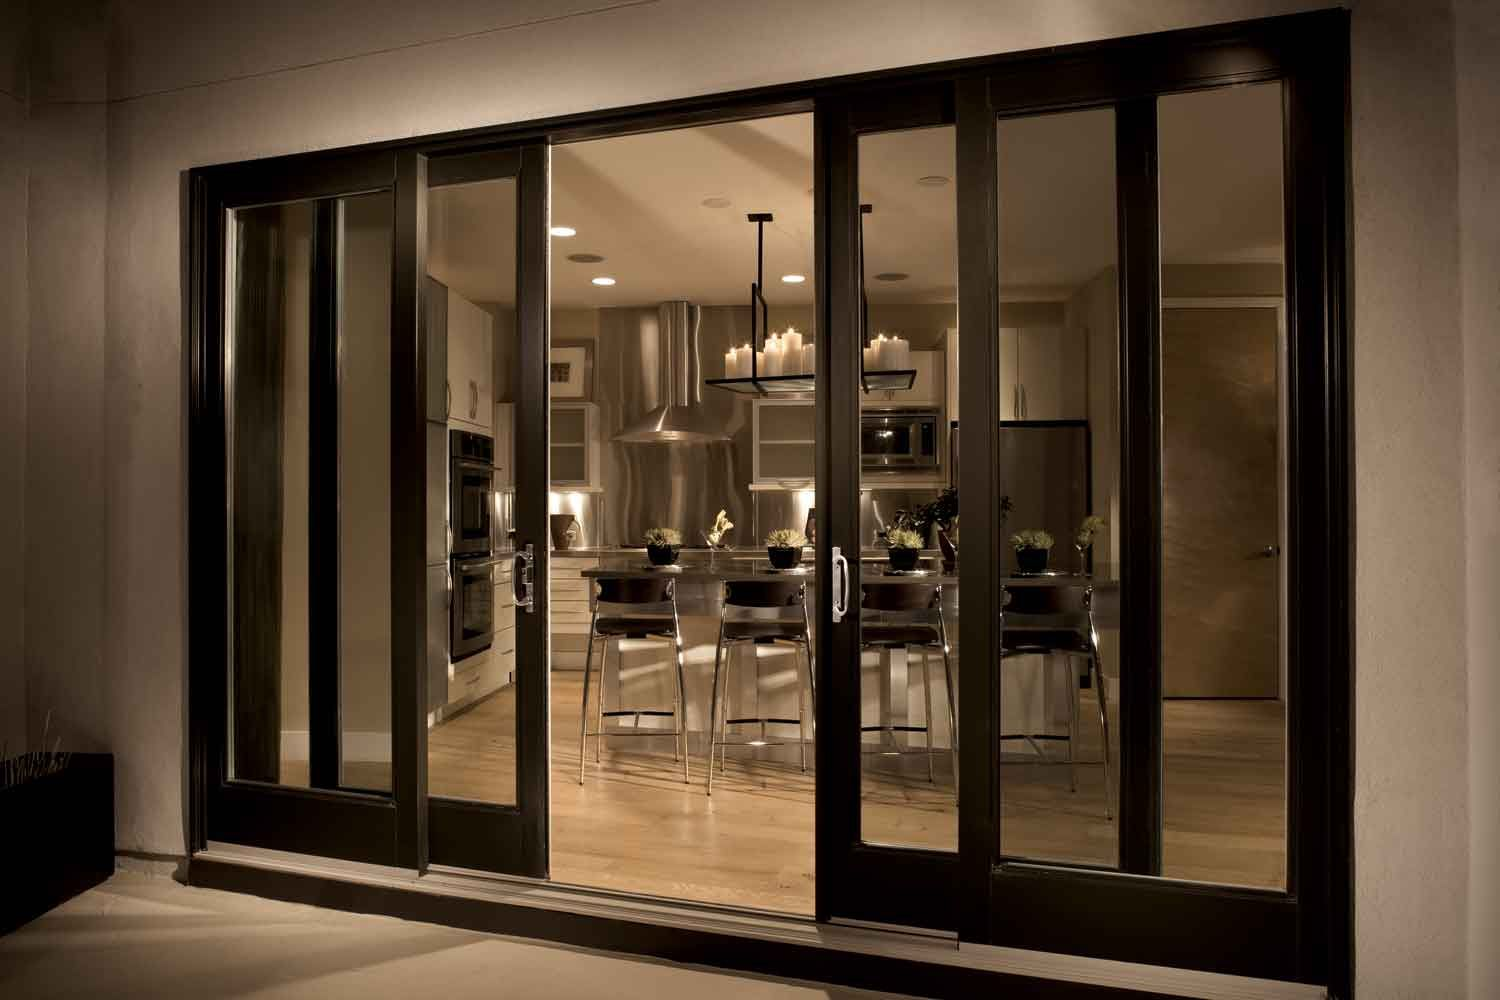 Exterior double glass patio doors patio doors are doors that types sliding patio doors that you can choose fiberglass sliding patio door with 4 panel configurations eventelaan Image collections